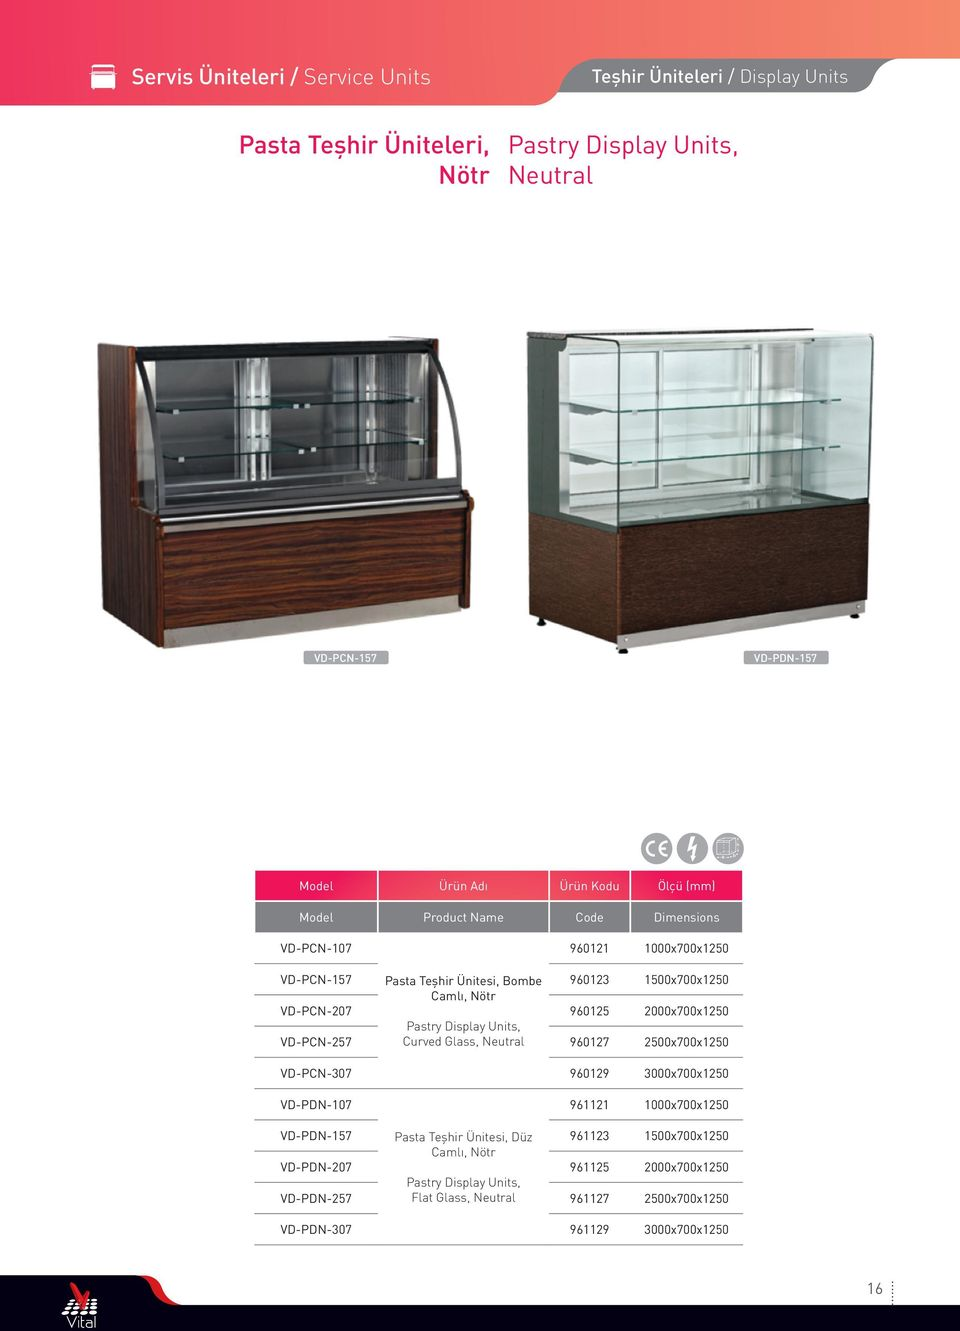 VD-PCN-257 Pastry Display Units, Curved Glass, Neutral 960127 2500x700x1250 VD-PCN-307 960129 3000x700x1250 VD-PDN-107 961121 1000x700x1250 VD-PDN-157 VD-PDN-207 Pasta